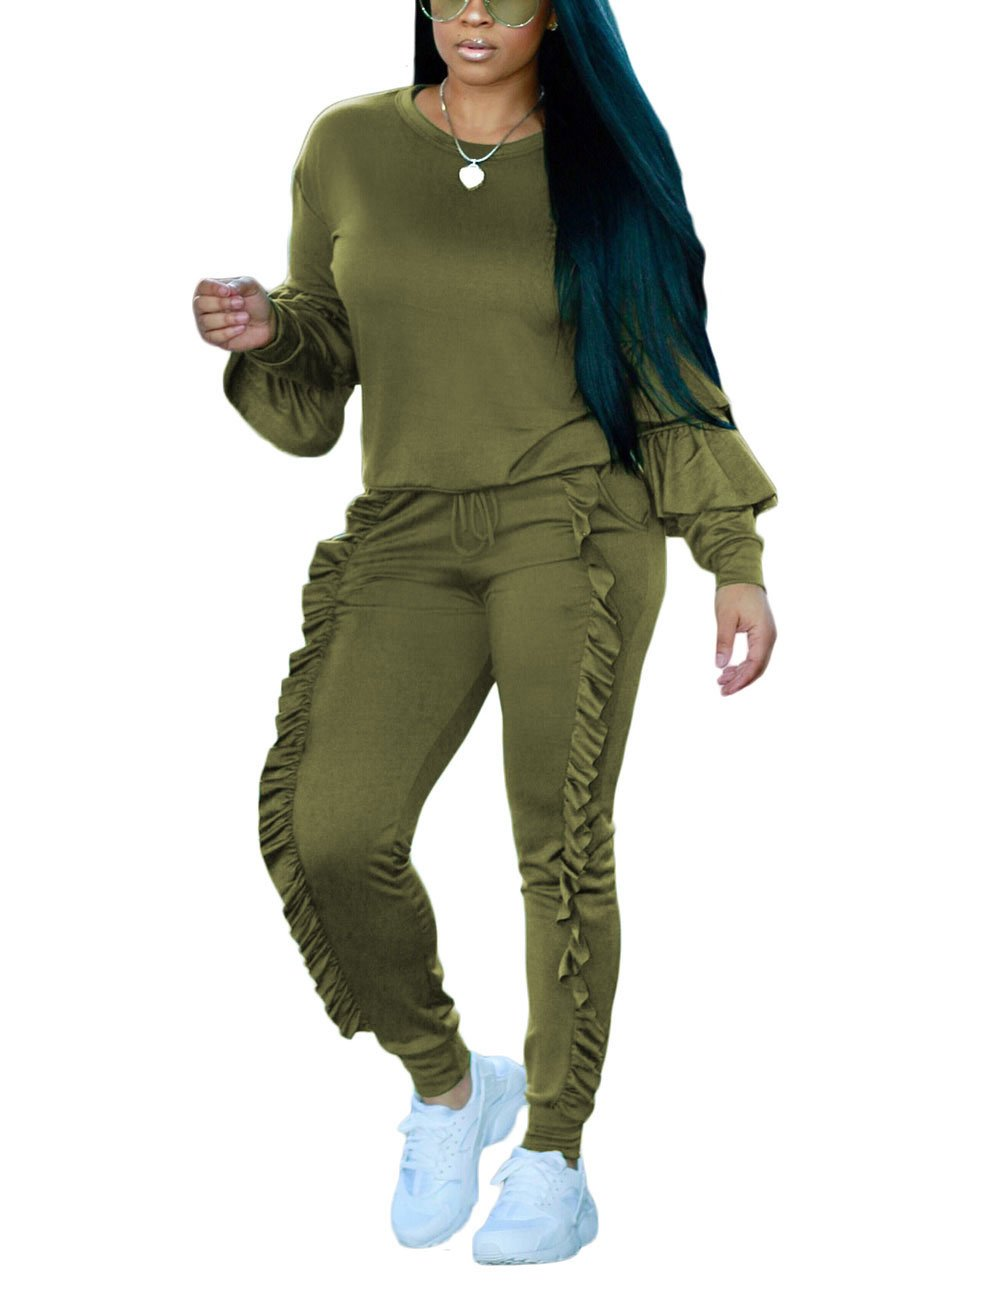 Akmipoem Autumn Long Sleeve Hoodie and Pants Two Piece Set Sweatsuits for Teen Girls,Army Green,Medium/US8-10